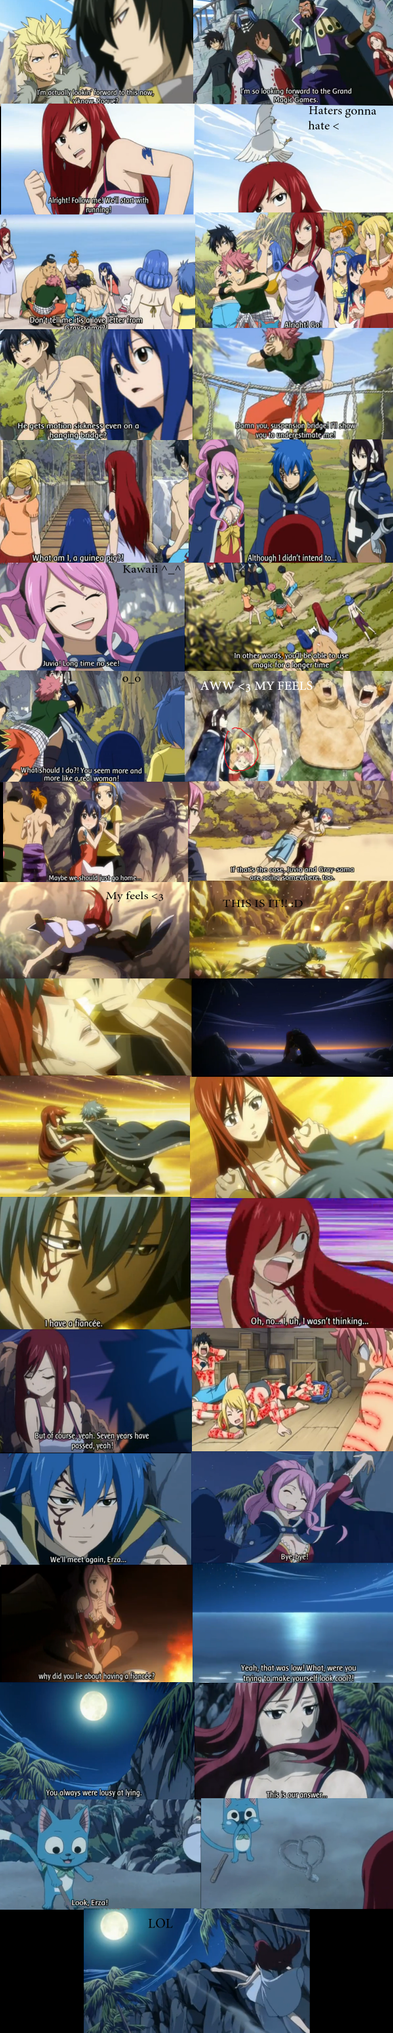 FAIRY TAIL EPISODE 154 Snapshots Jerza feels by Faithwoe